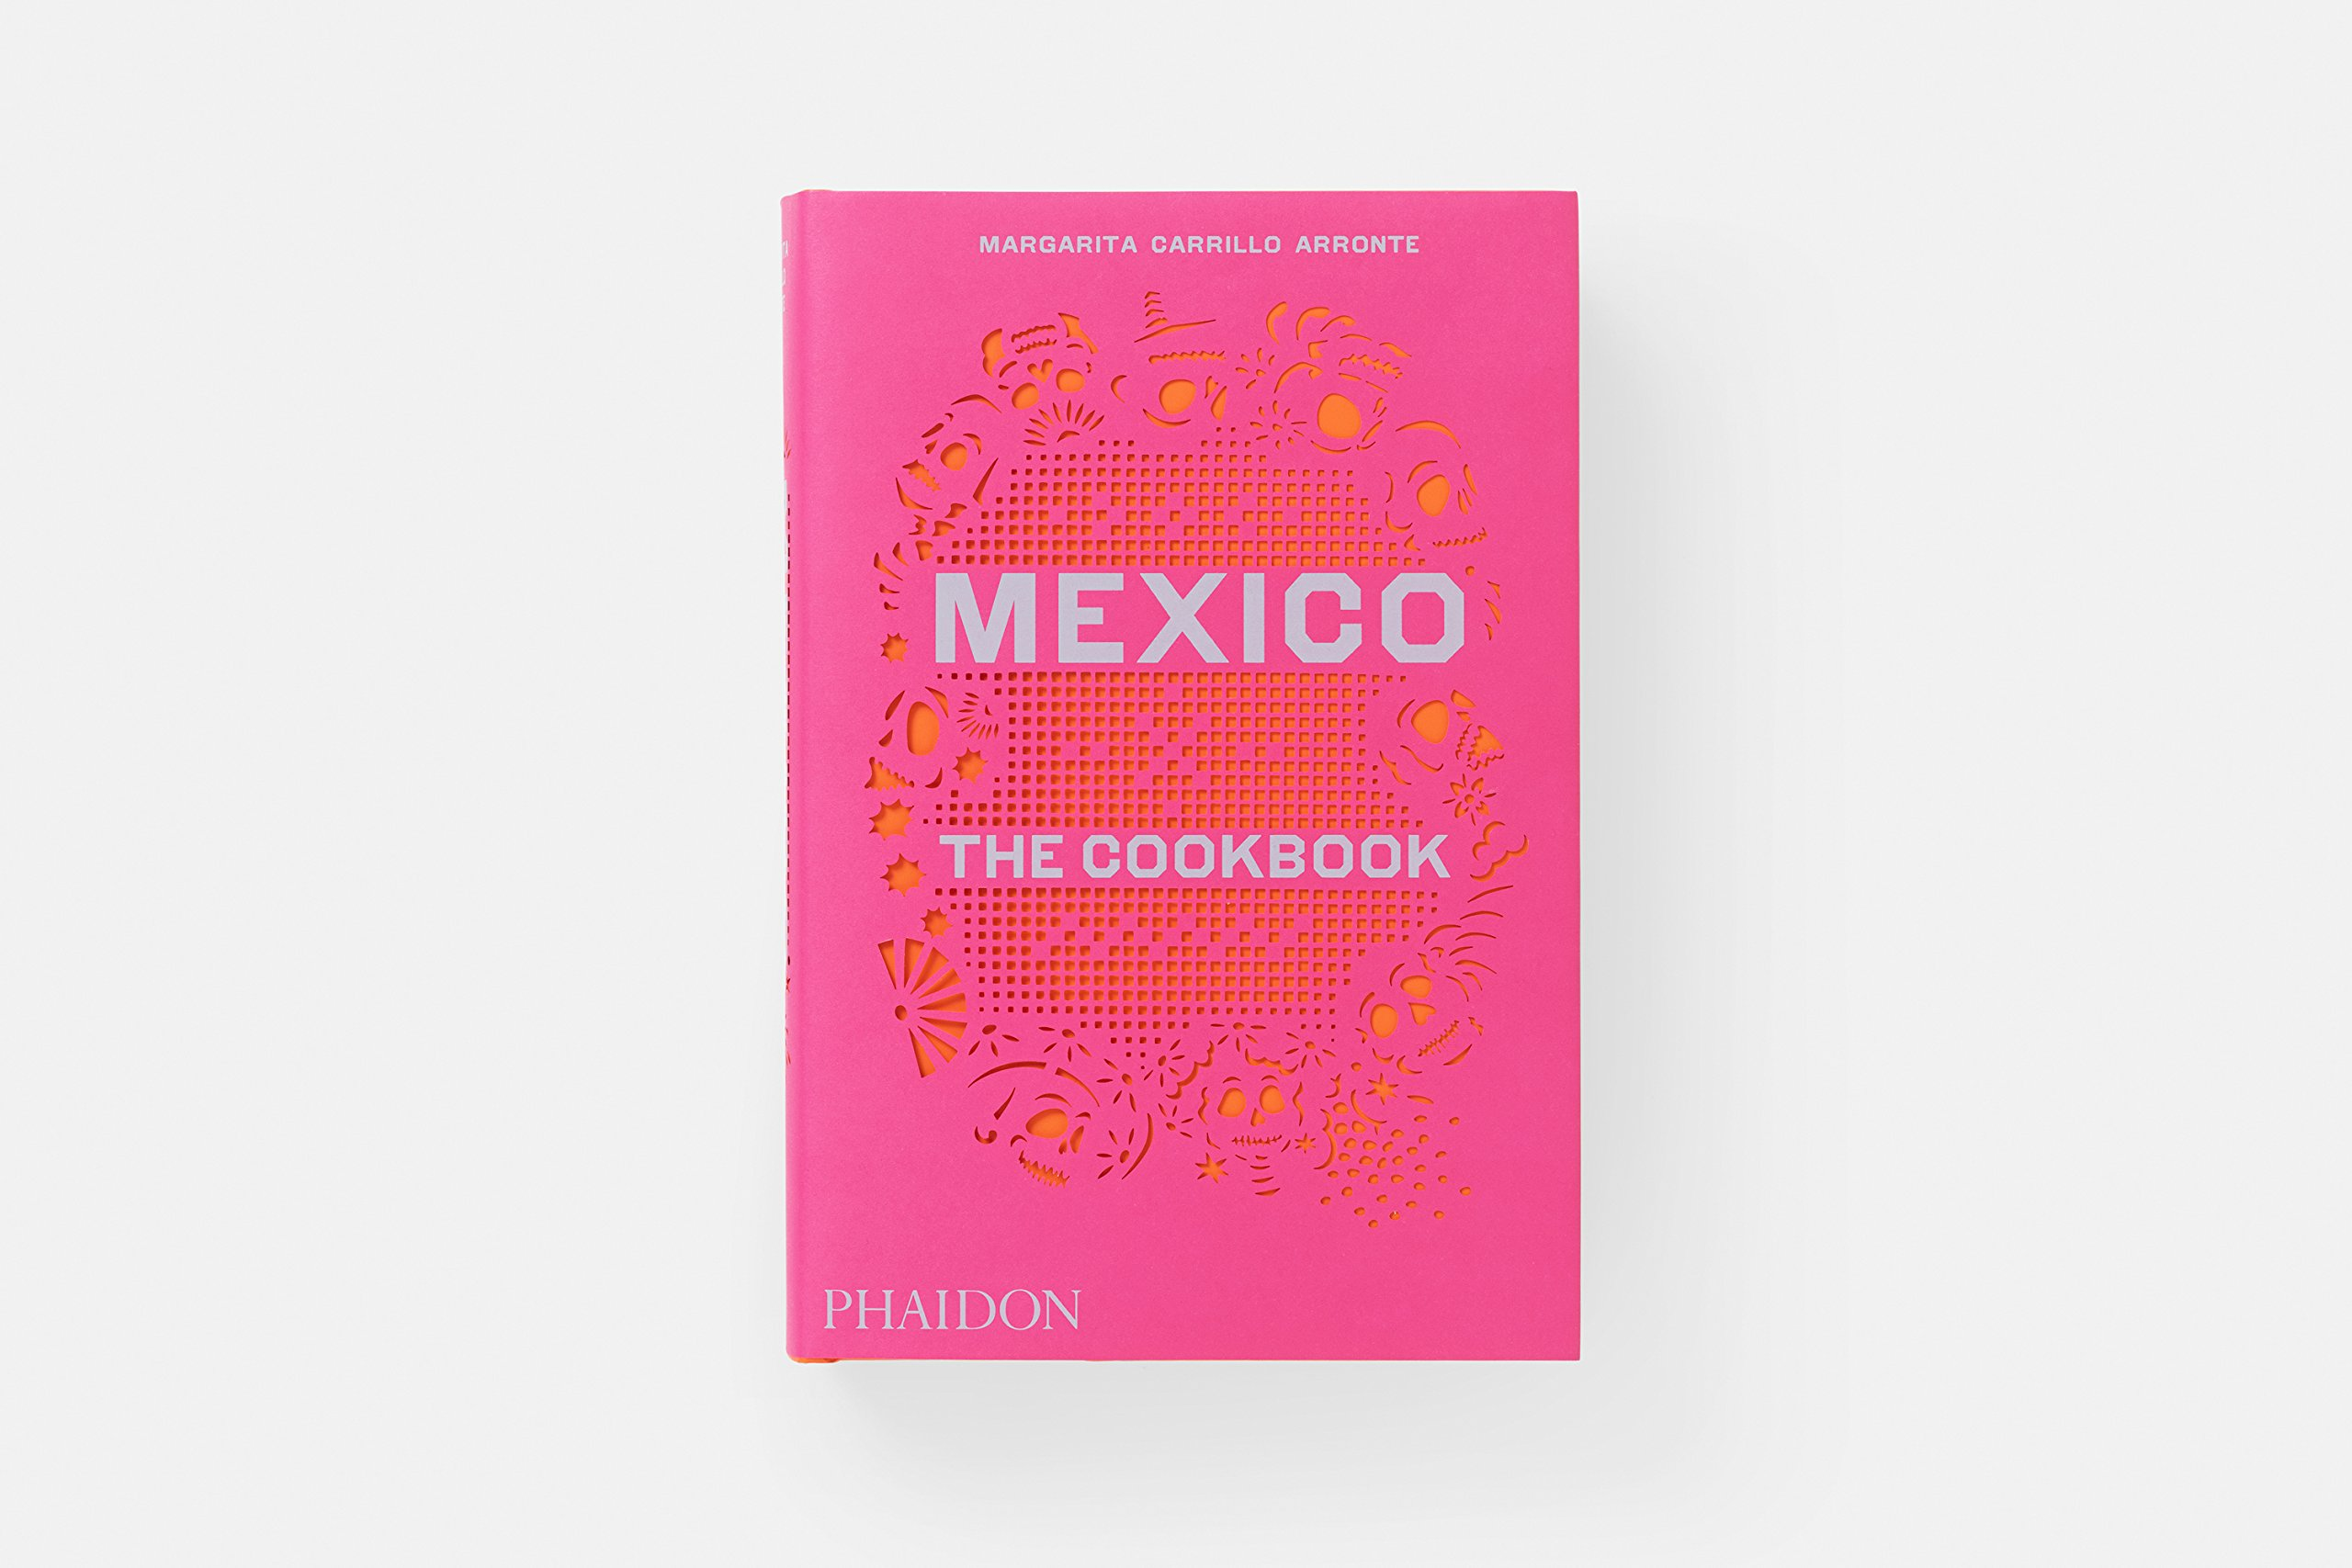 Mexico the cookbook 2017 amazon margarita carrillo arronte mexico the cookbook 2017 amazon margarita carrillo arronte fremdsprachige bcher solutioingenieria Gallery